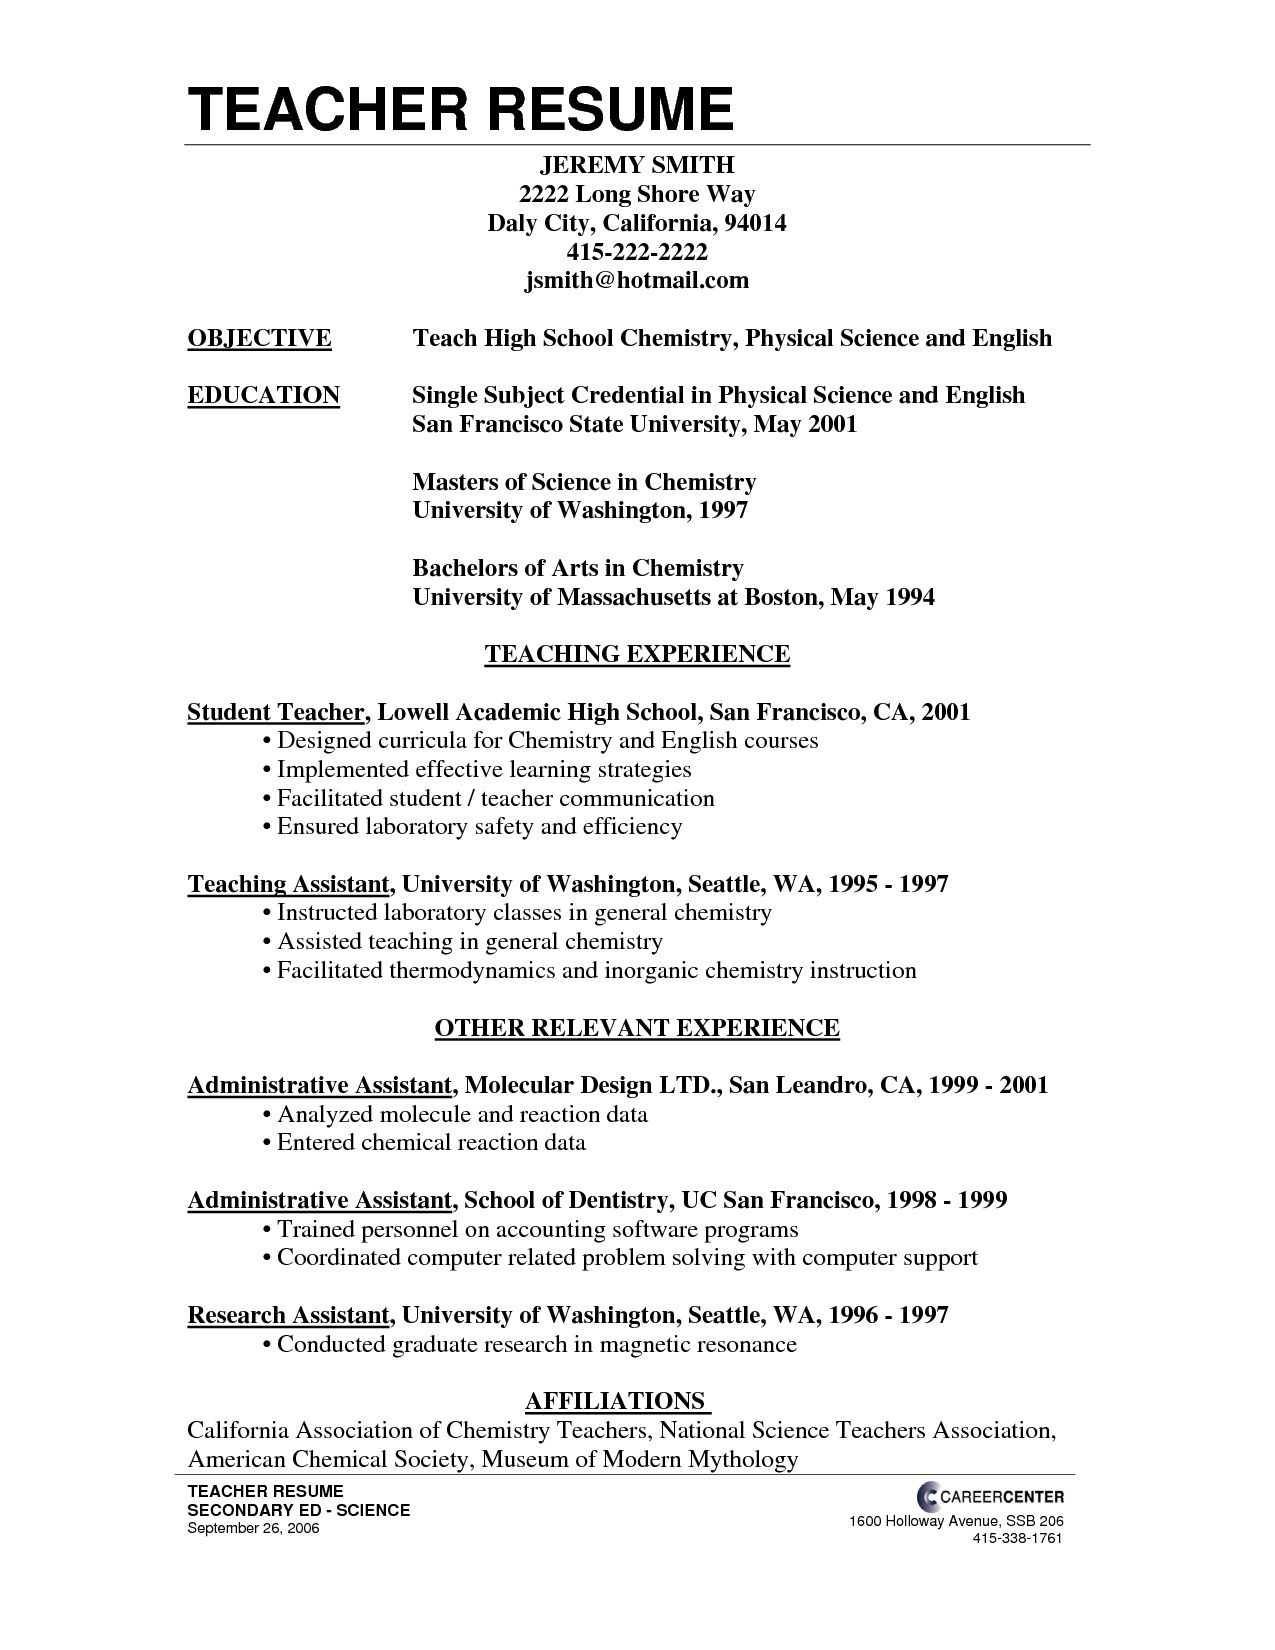 High School Teacher Resume  Biodata Format For Teacher Job